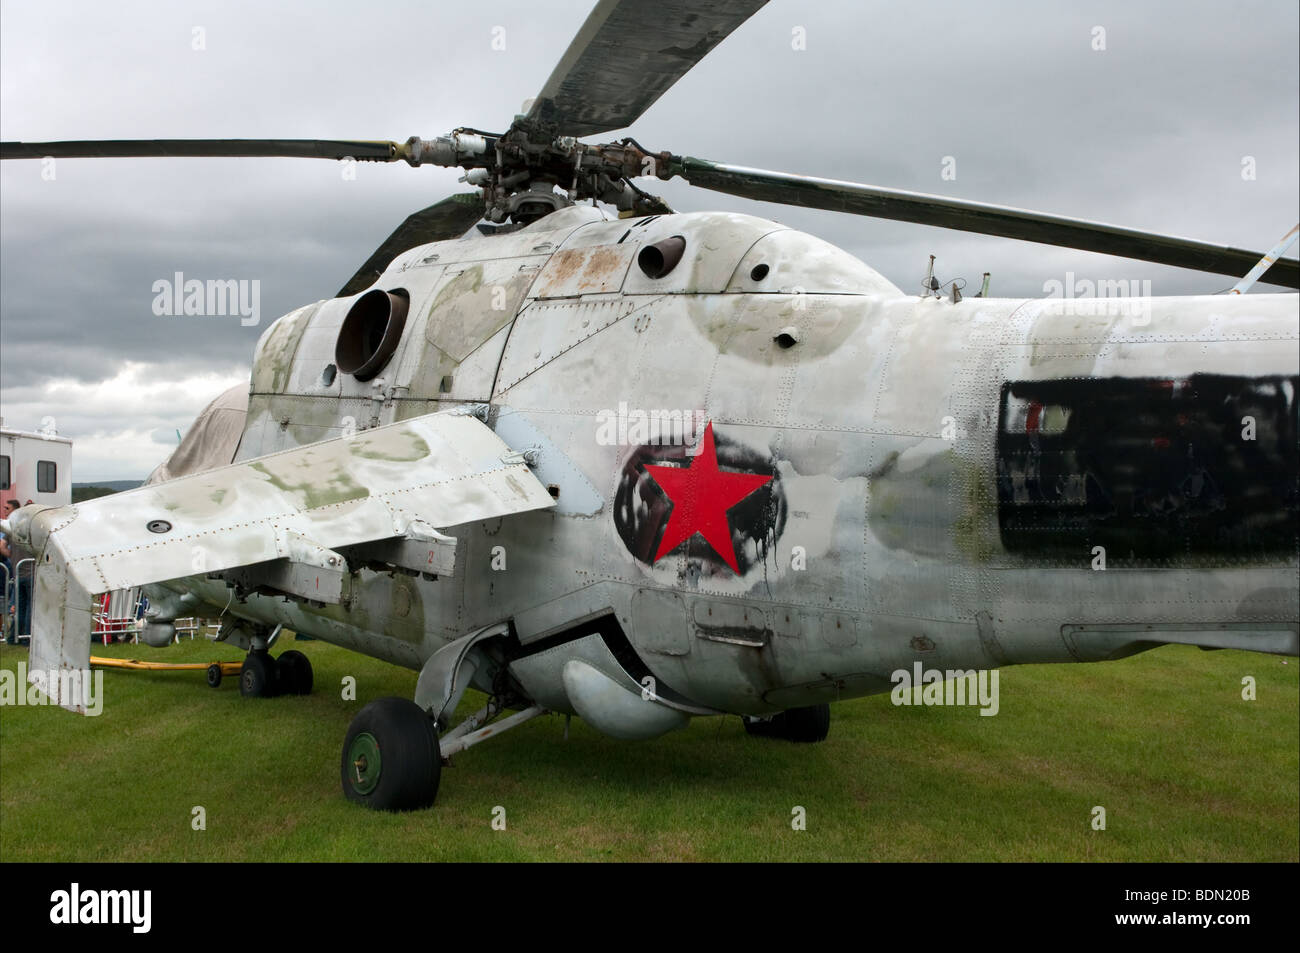 Soviet era Hind MIL-24 military helicopter - Stock Image